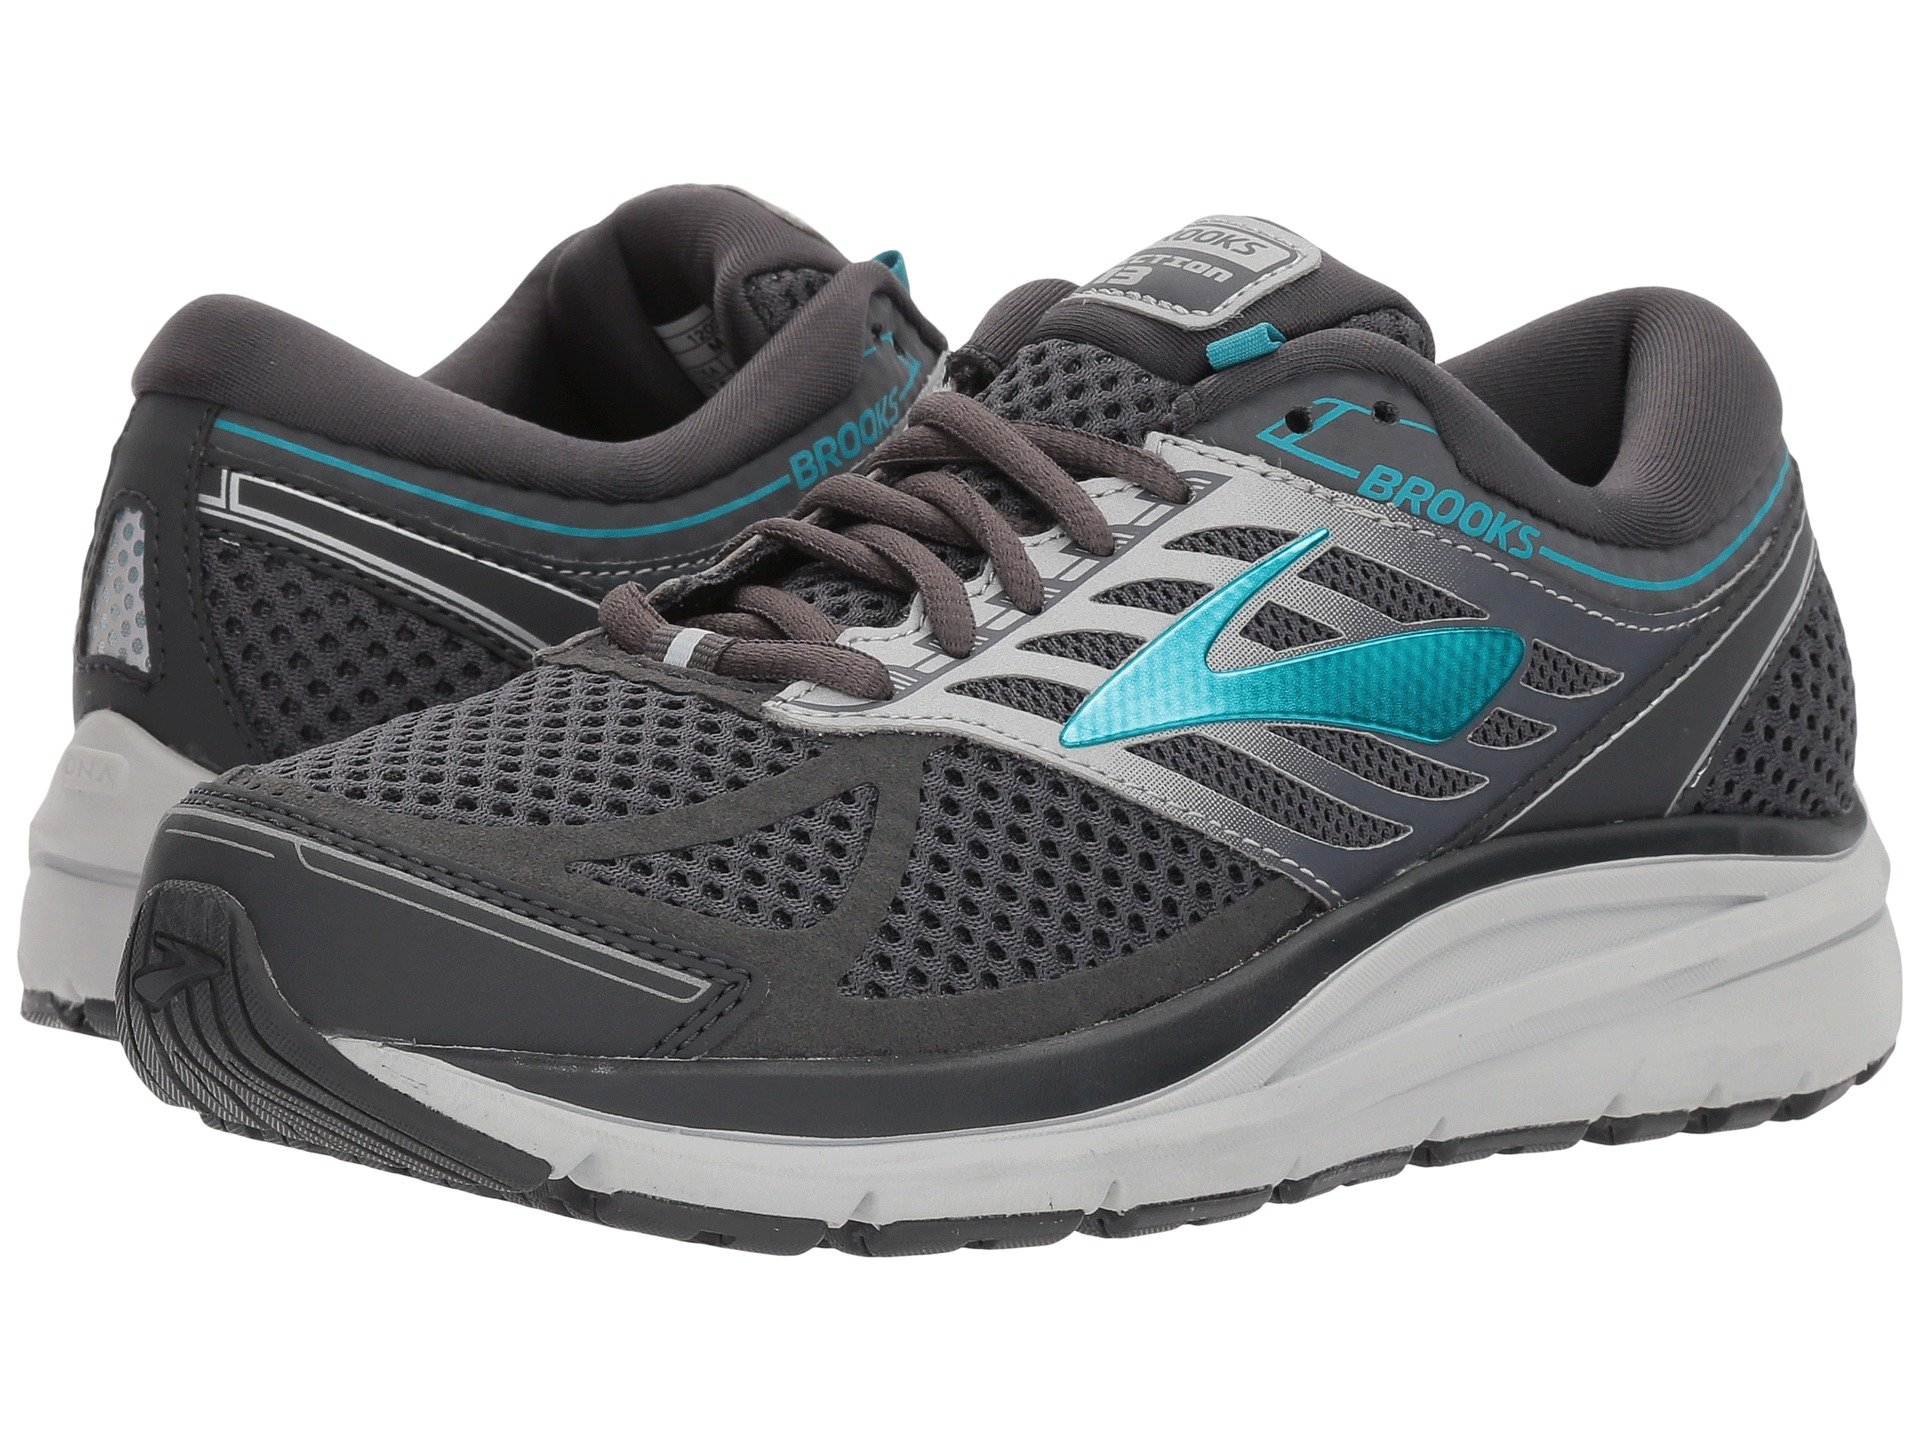 1640c41720f Women s Brooks Latest Styles + FREE SHIPPING